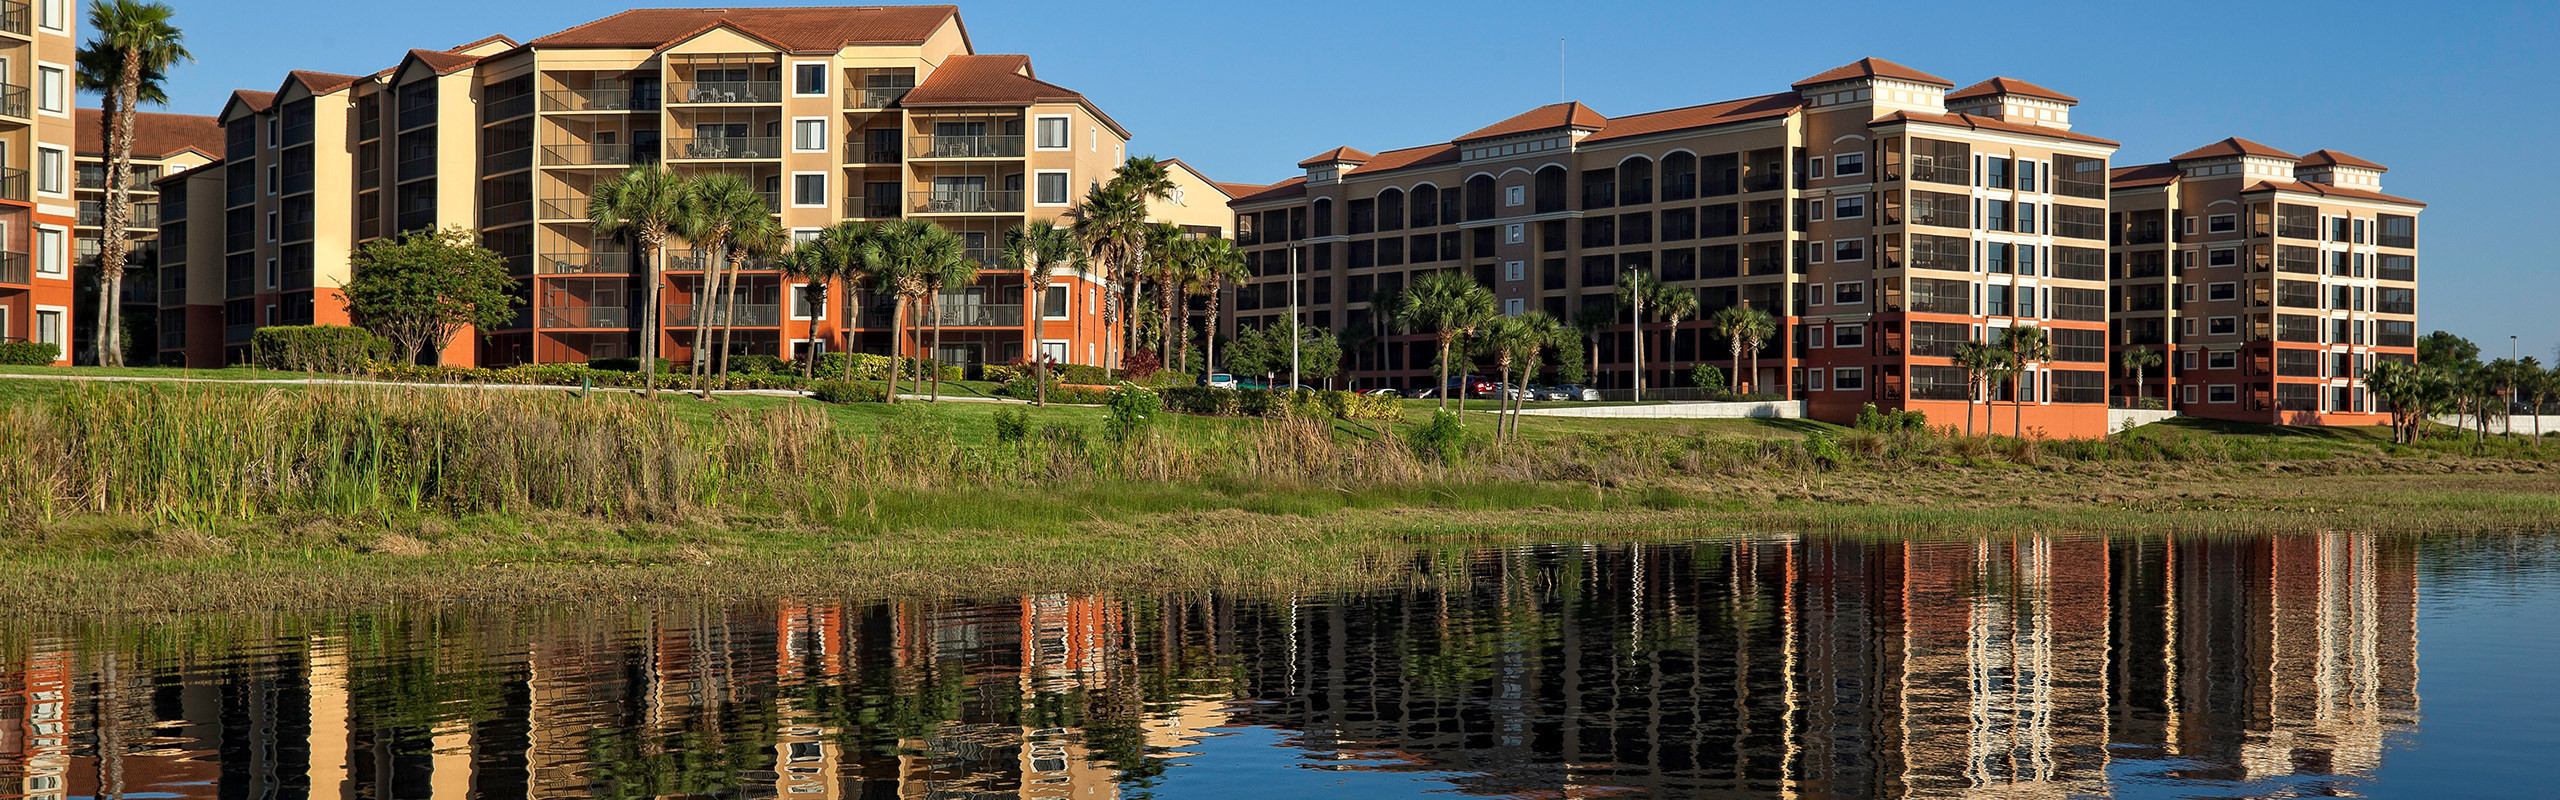 Special Offers Westgate Lakes Resort Amp Spa In Orlando Florida Westgate Resorts